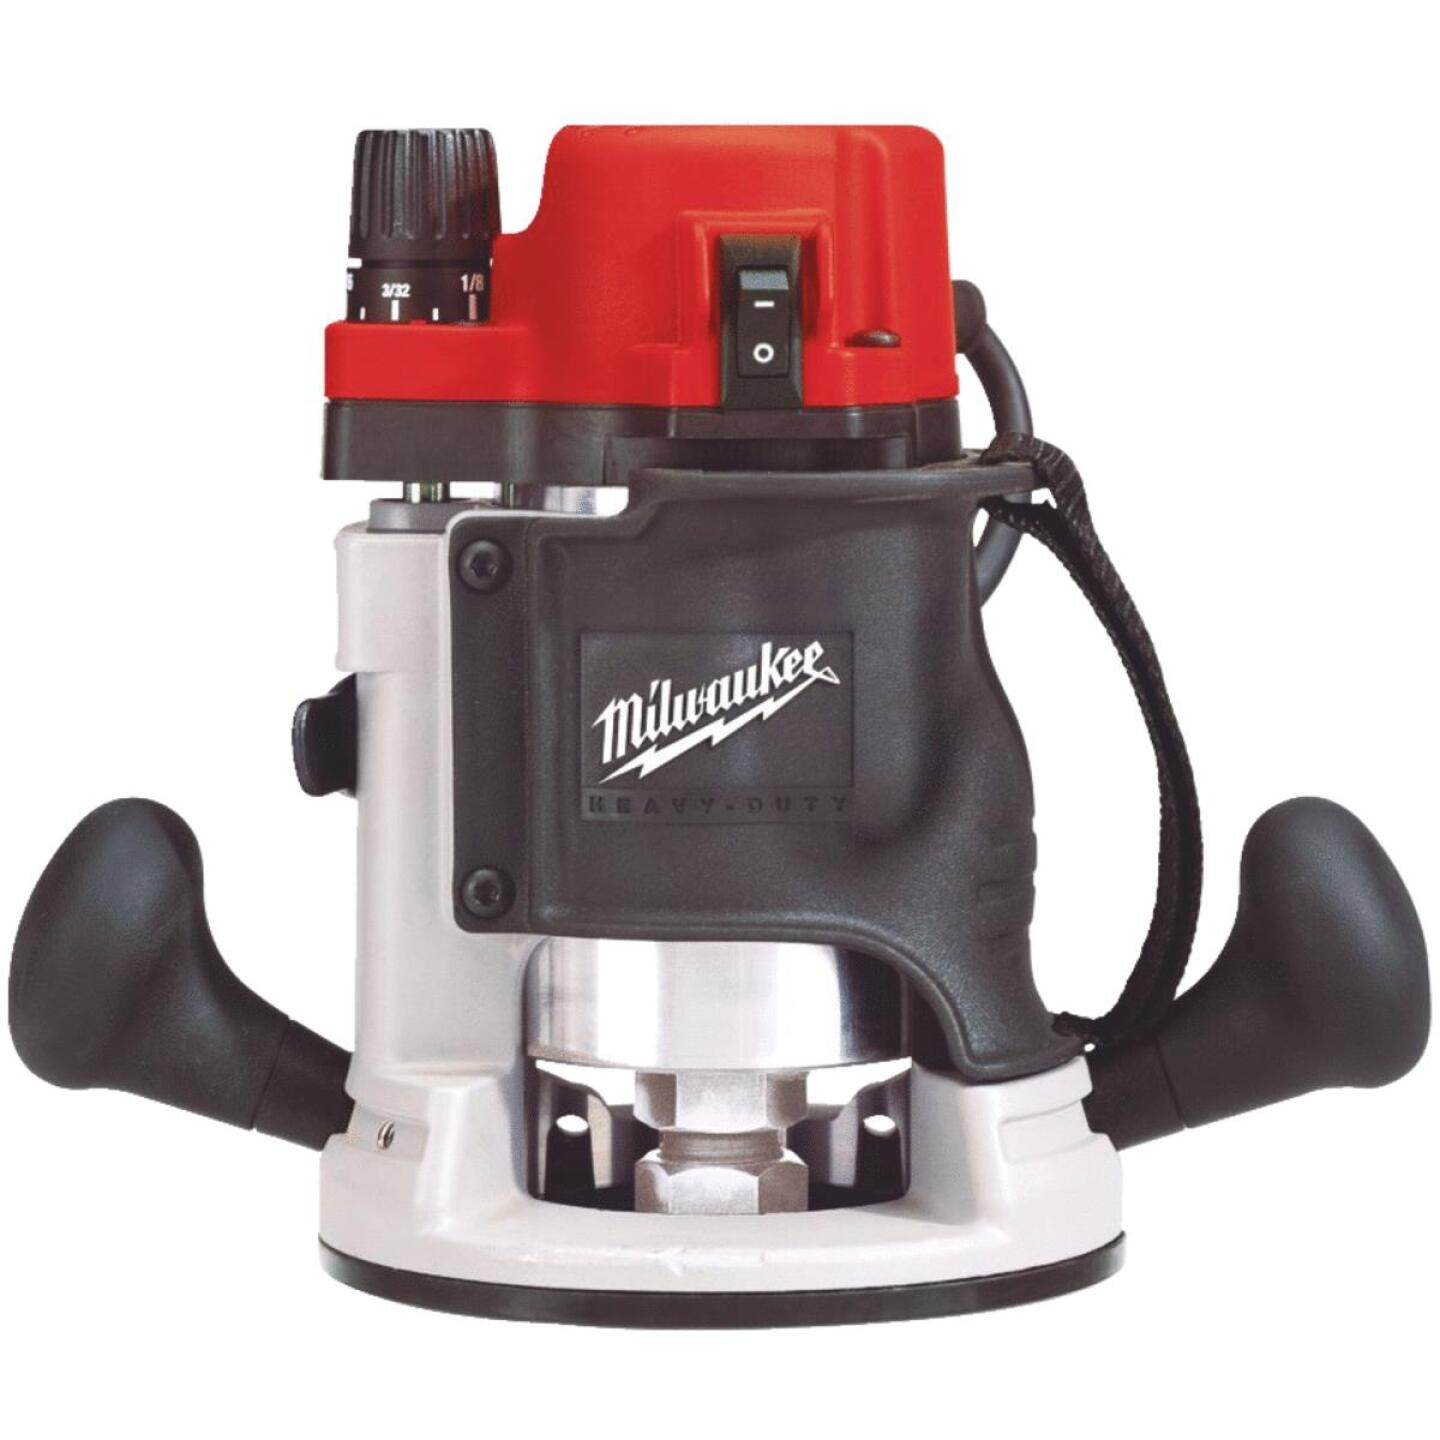 Milwaukee 11.0A 24,000 rpm Router Kit Image 1